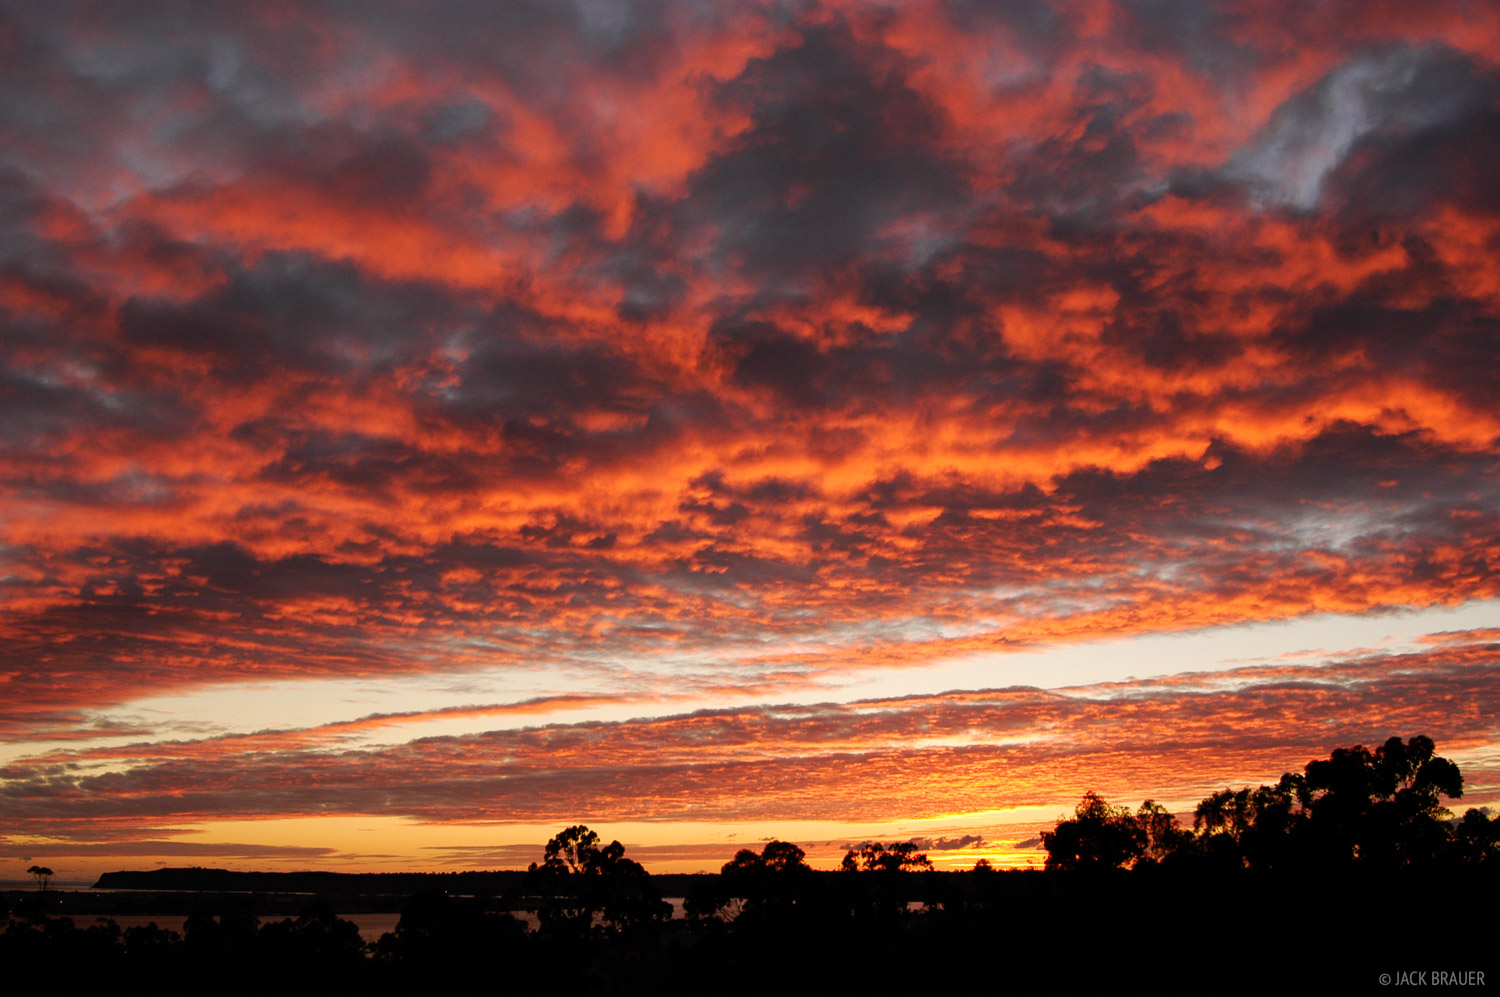 sunset, Bankers Hill, San Diego, California, photo